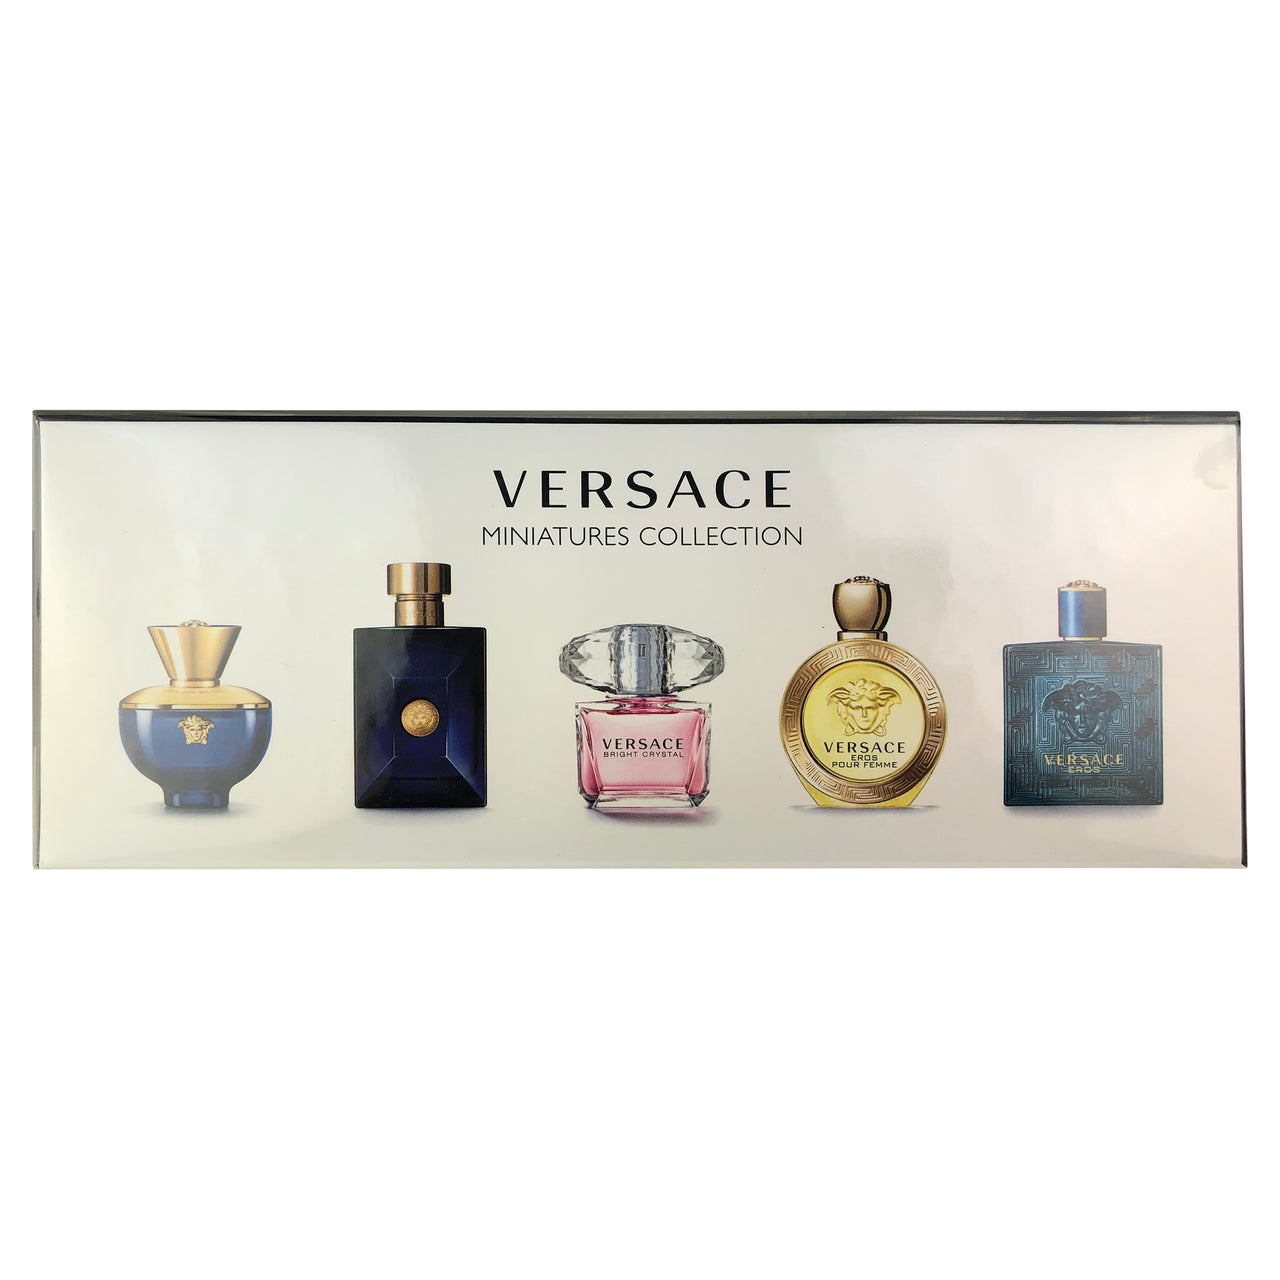 Versace 5 Pc. Miniature Collection For Men & Women Eros Eros Pour Femme Bright Crystal Pour Homme Dylan Blue Pour Femme & Homme .17 oz EDT/EDP Sp